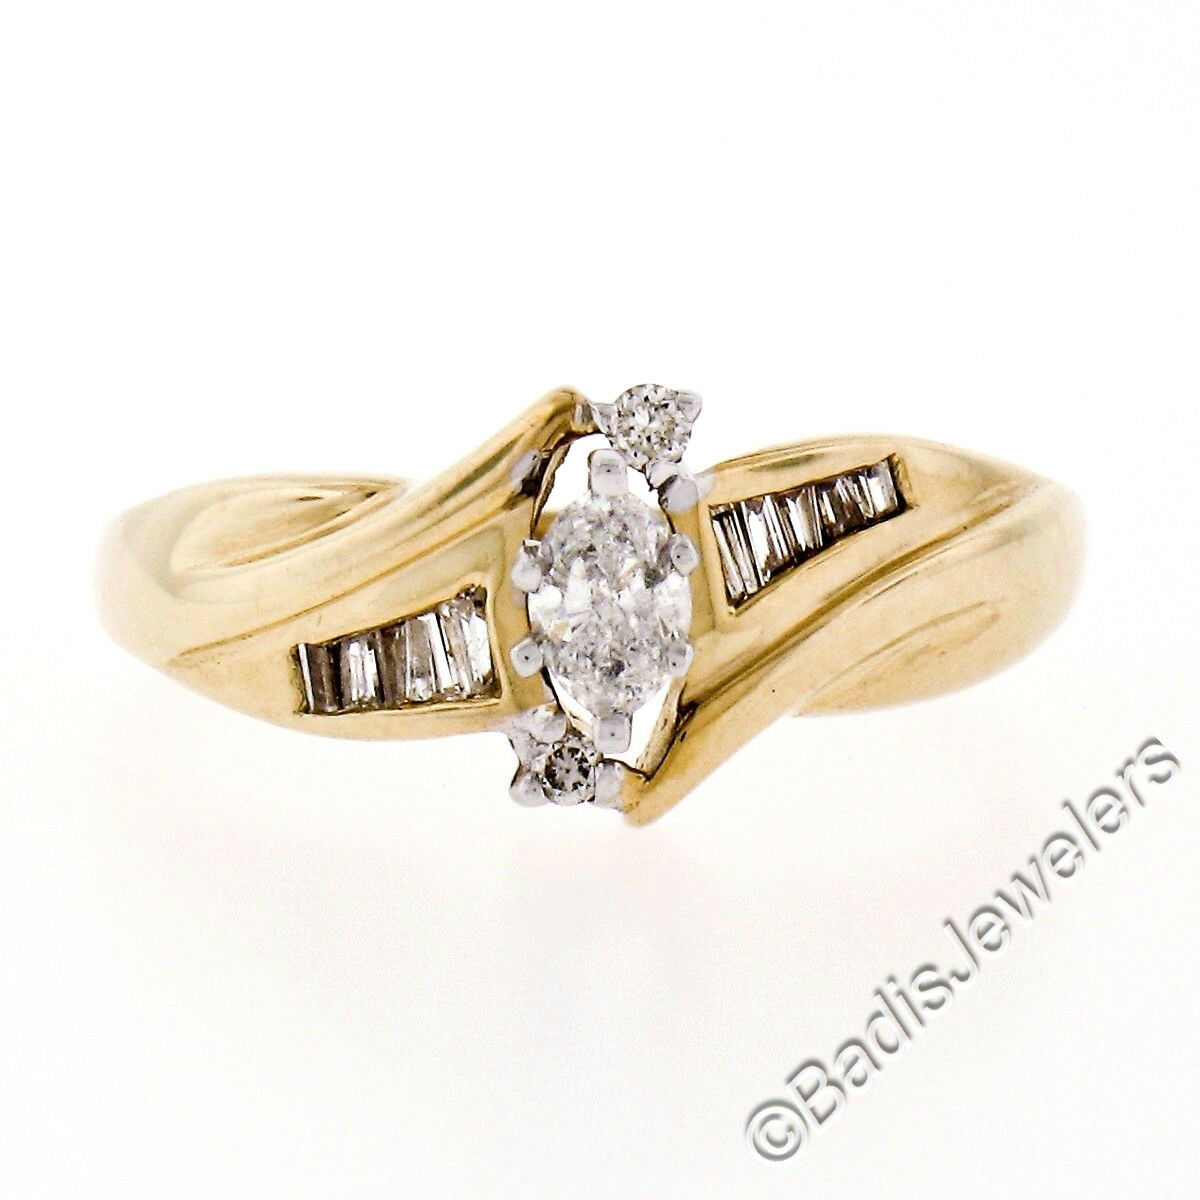 10k Yellow gold .44ctw Marquise Cut Diamond Solitaire Engagement Ring w  Accents